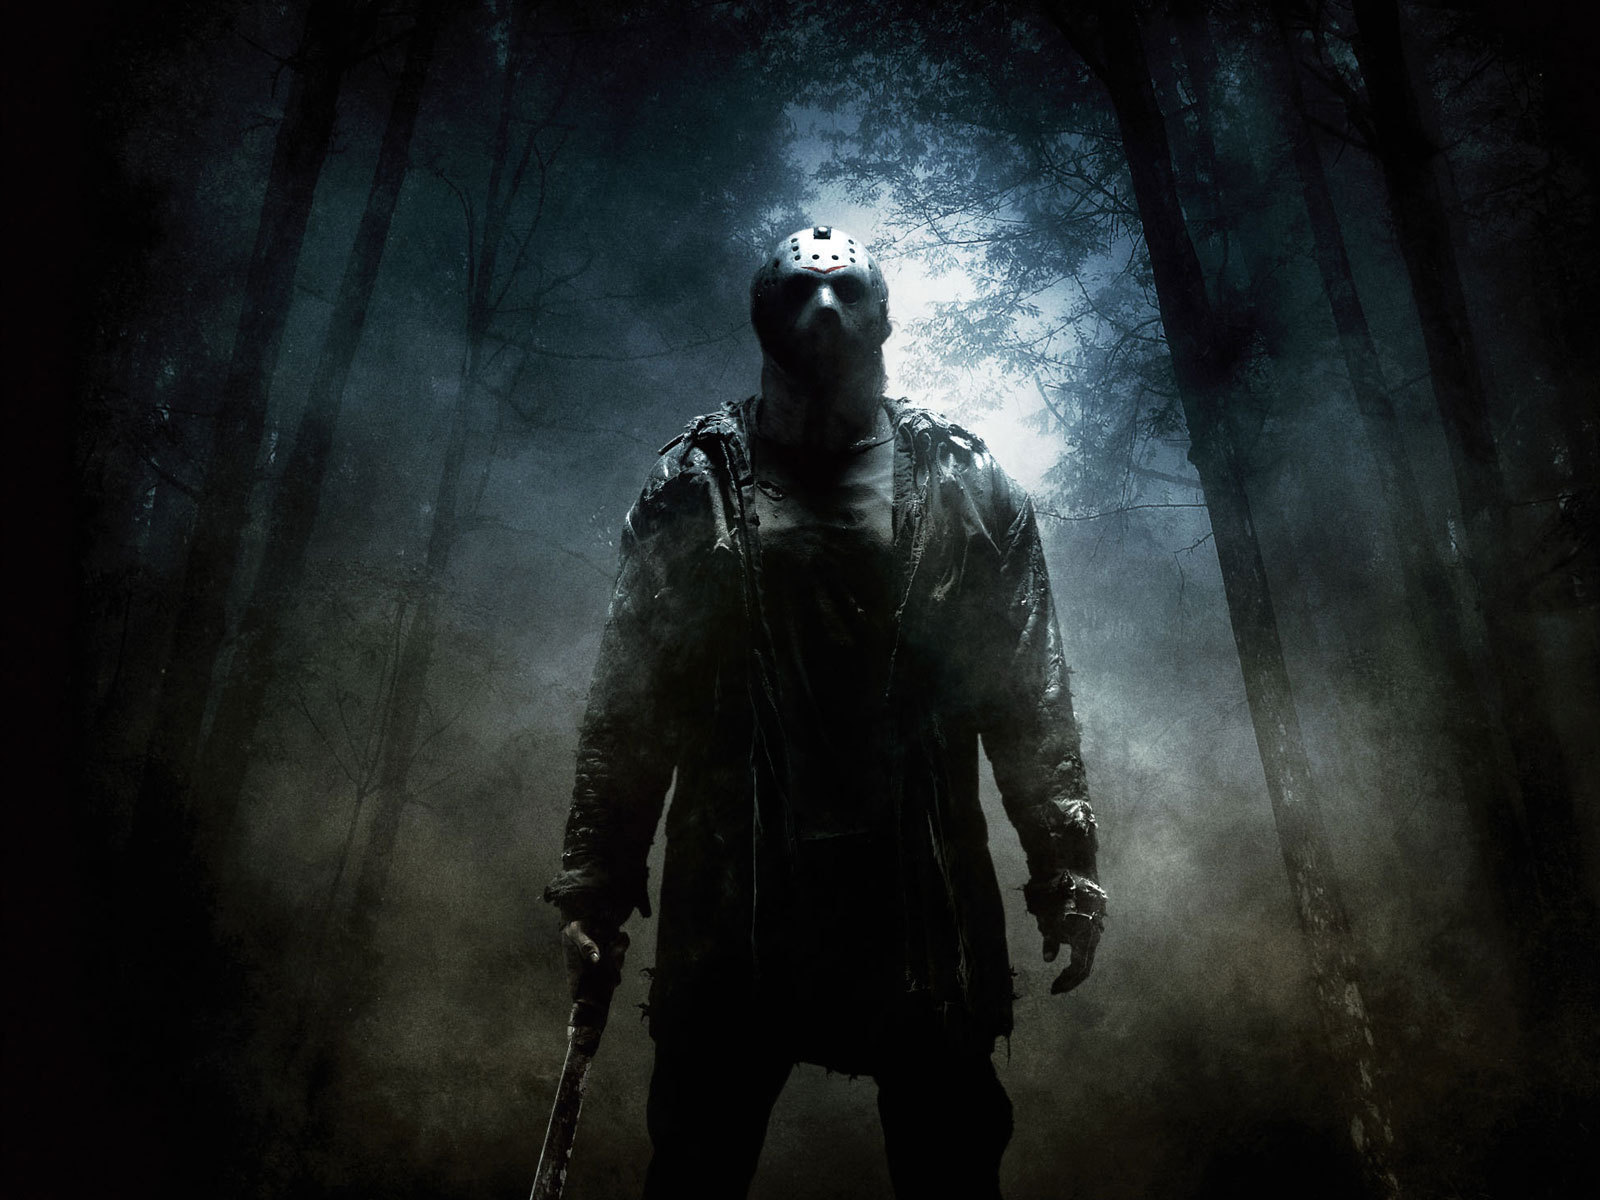 The-Immortal-Jason-Voorhees-jason-voorhees-23112696-1600-1200.jpg